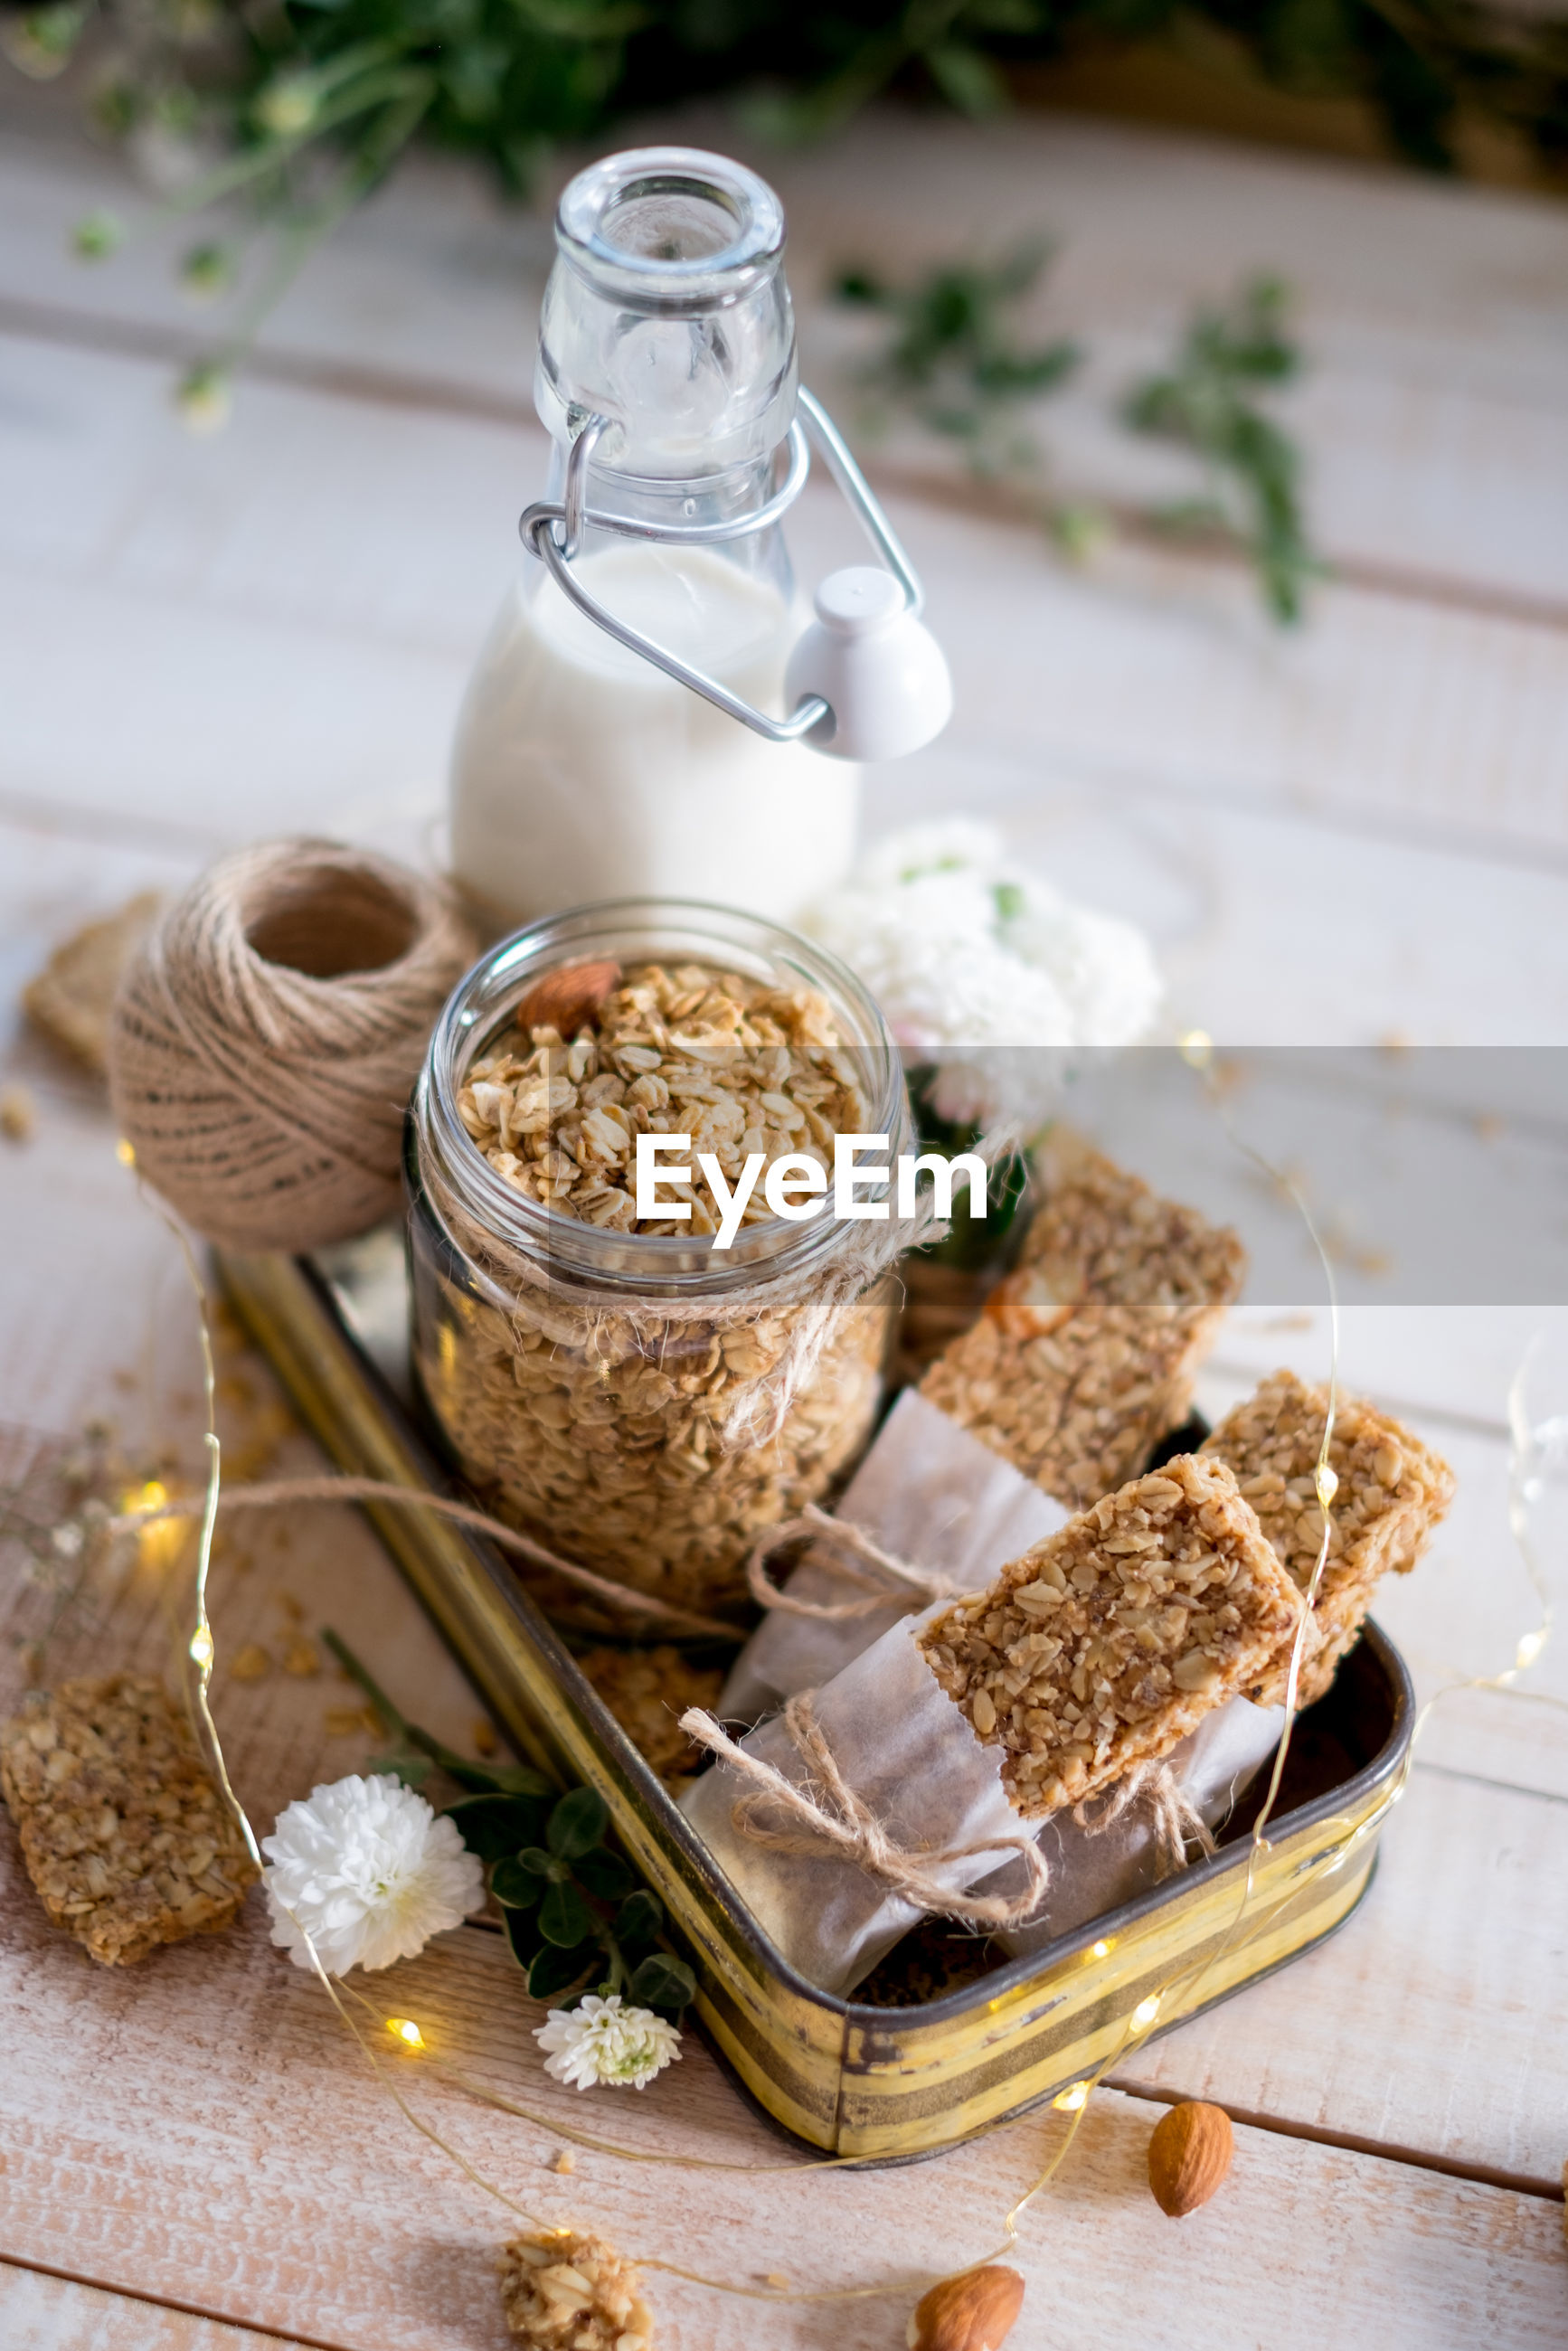 CLOSE-UP OF BREAKFAST IN GLASS CONTAINER ON TABLE